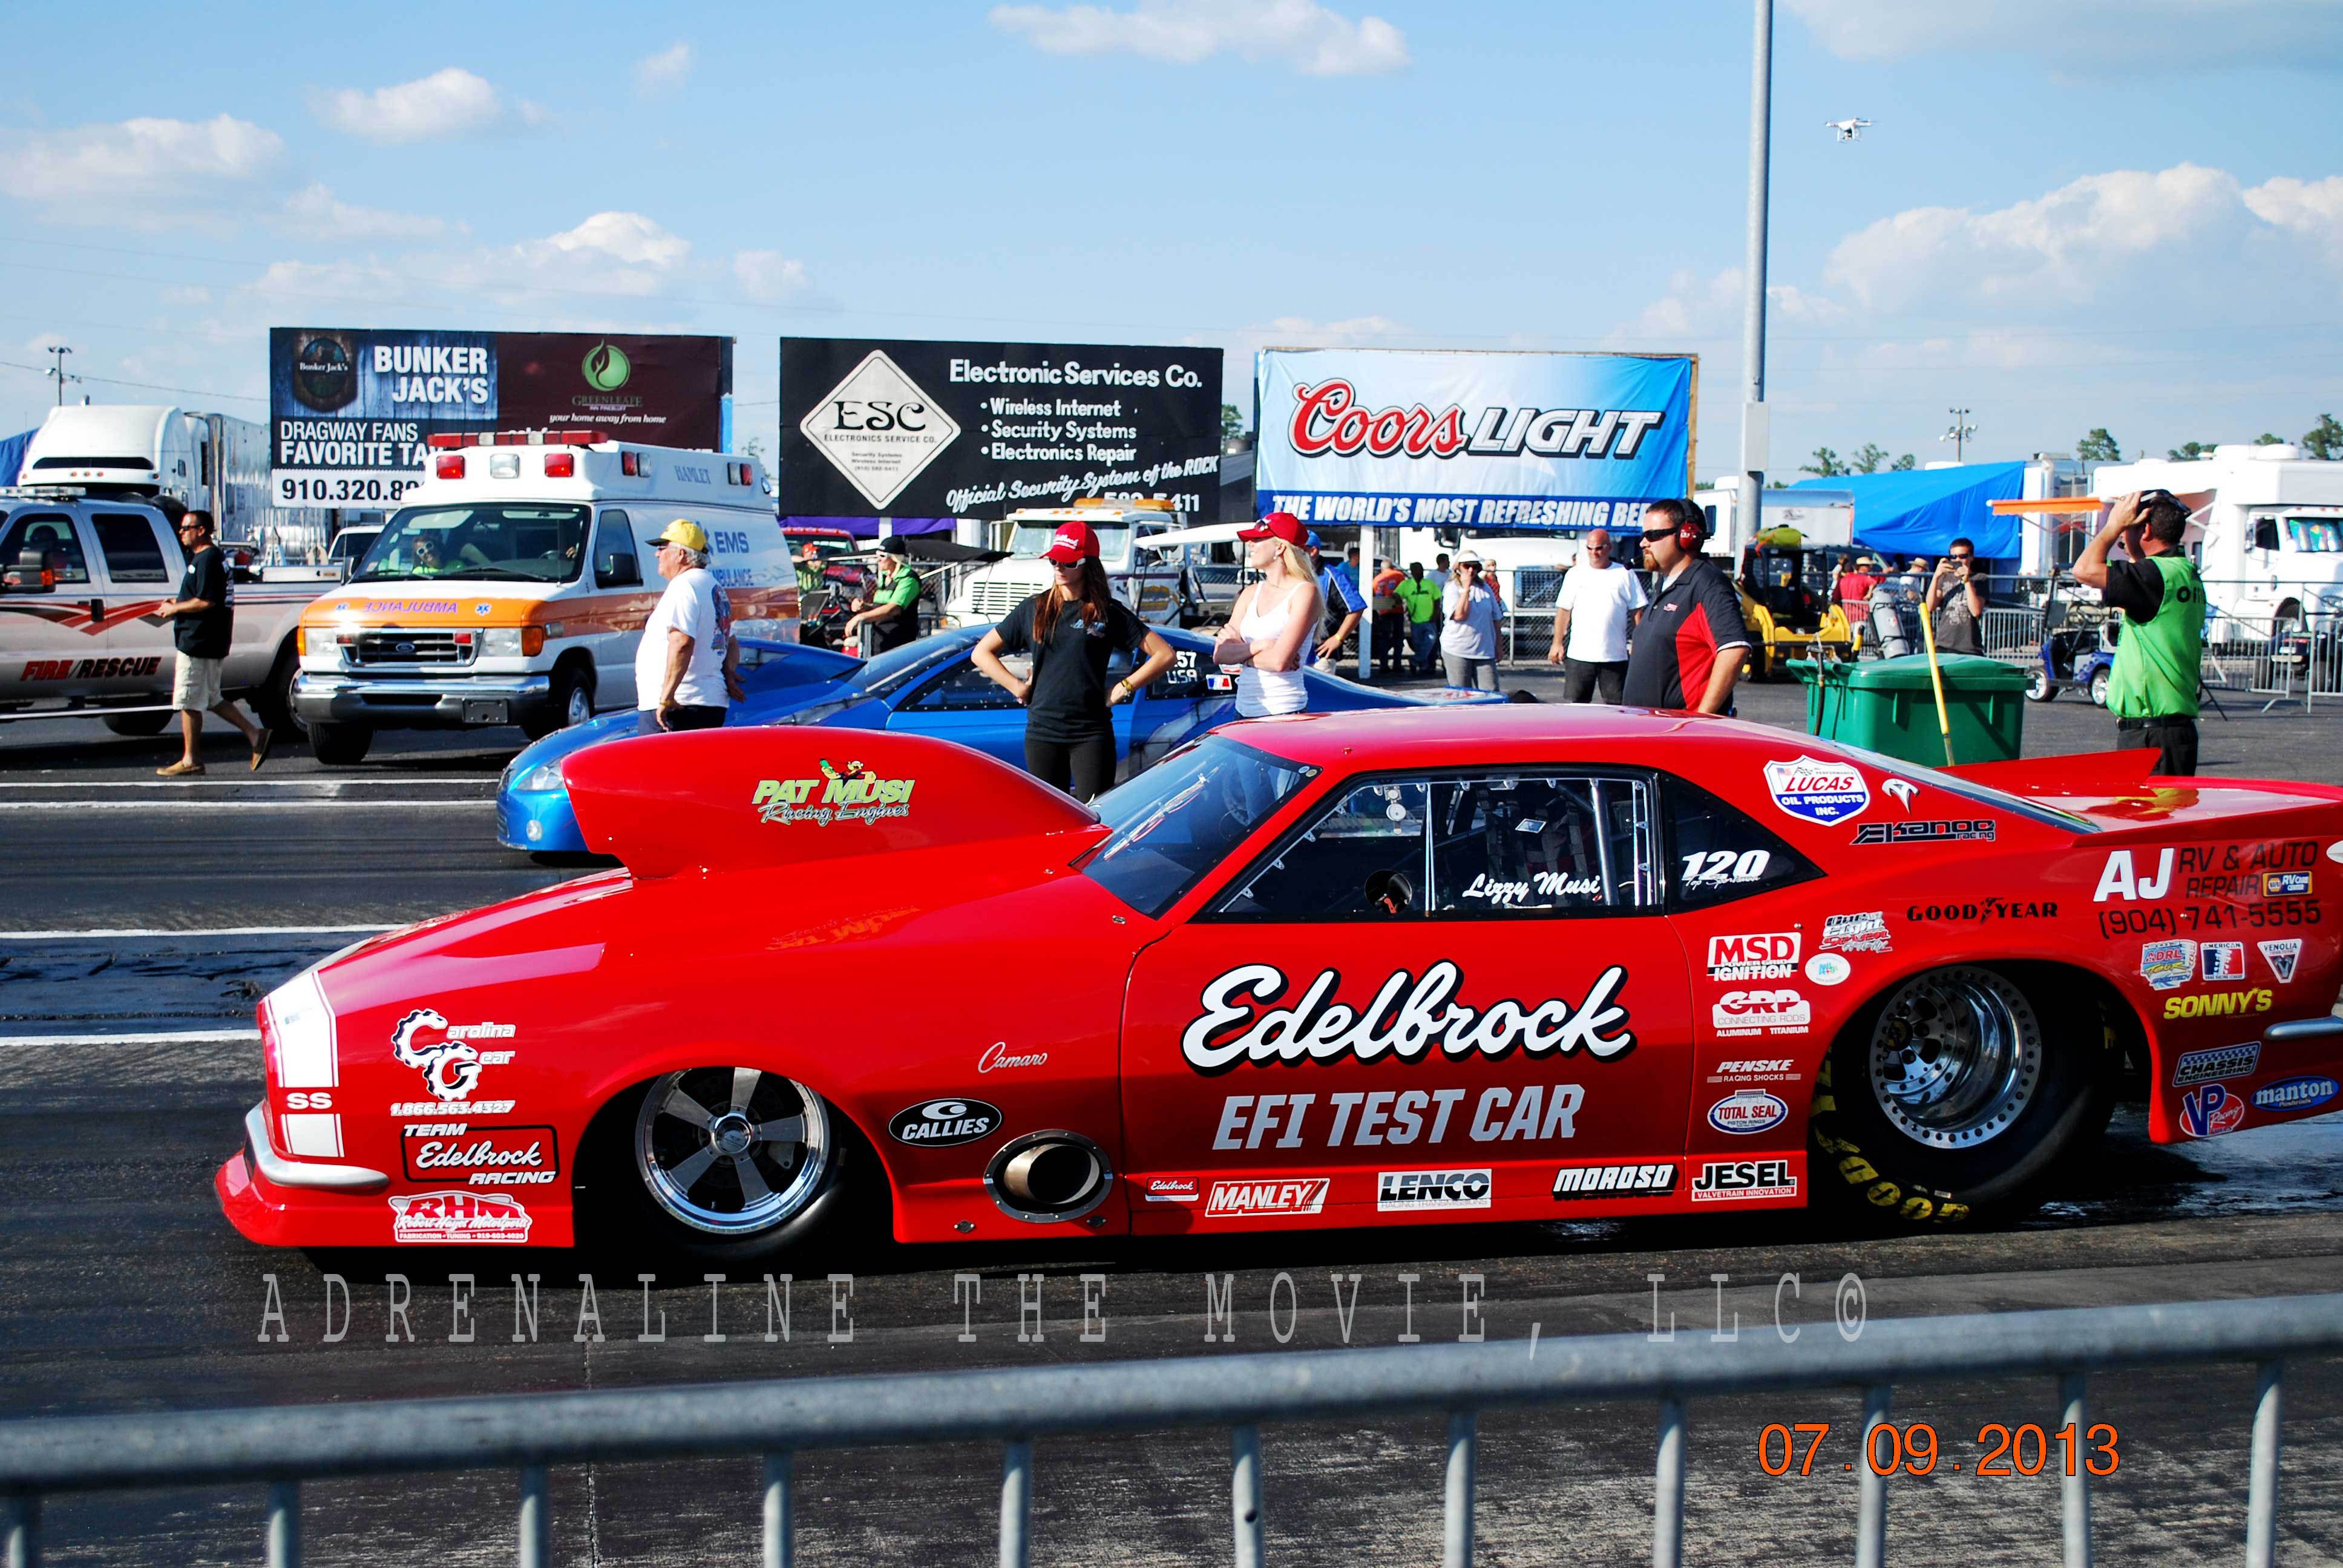 Edelbrock EFI Test Car